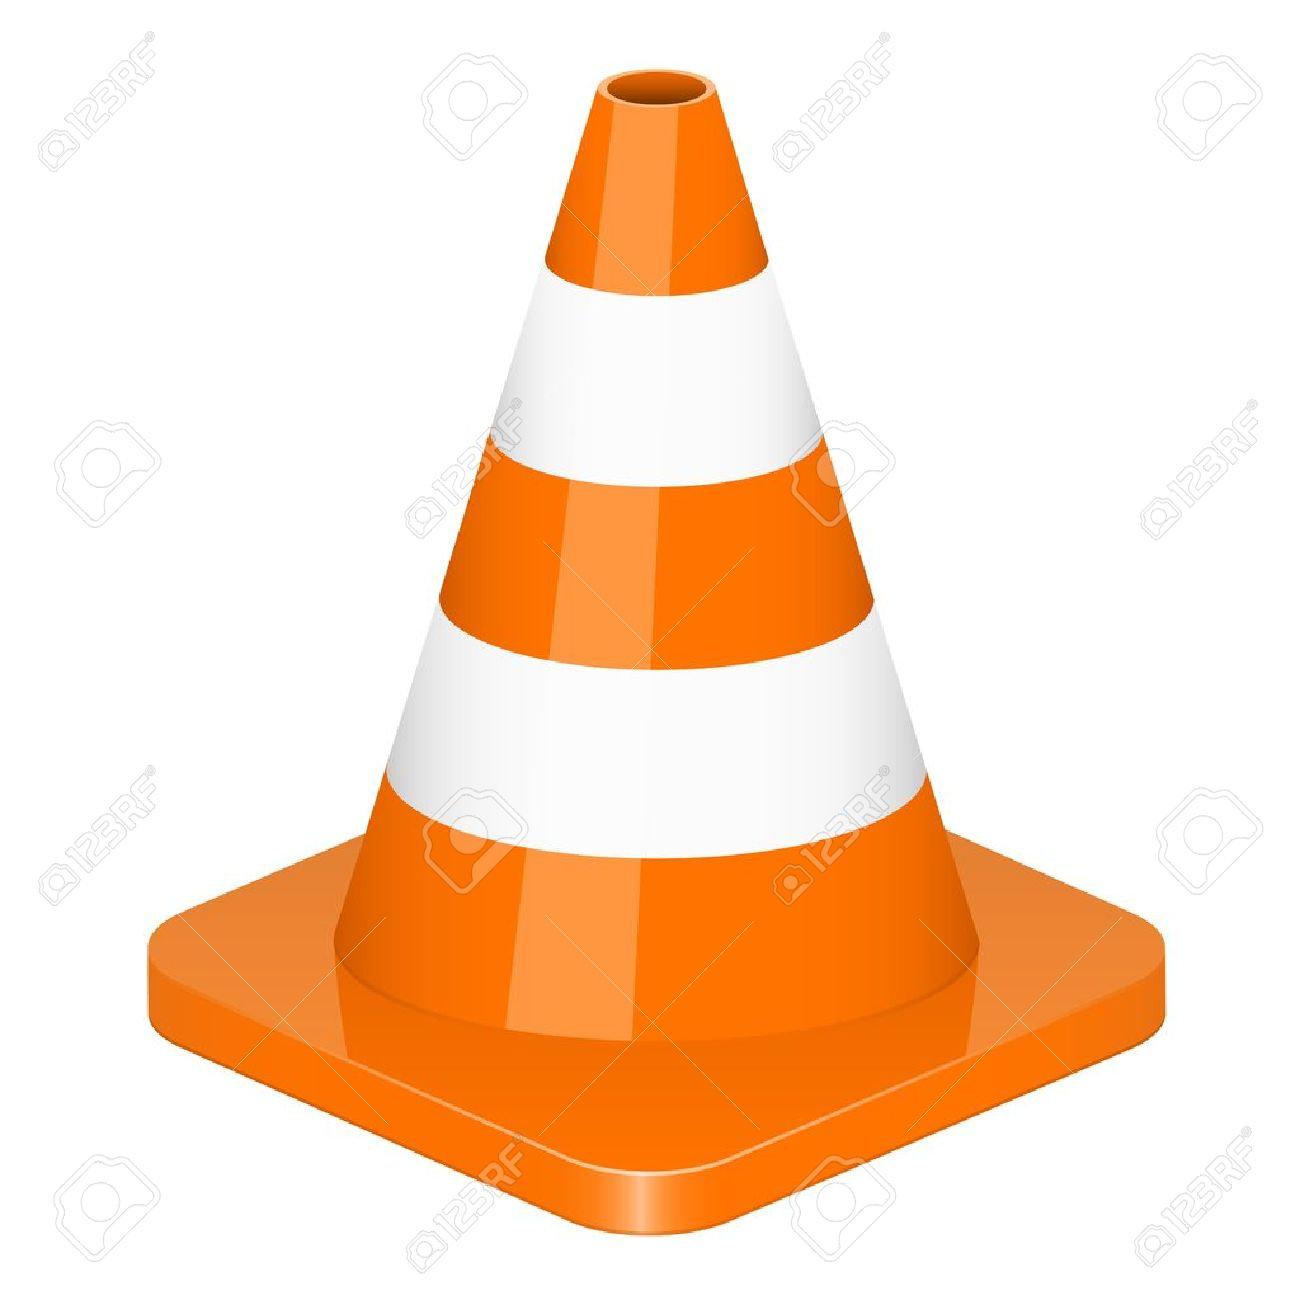 vector illustration of traffic cone royalty free cliparts vectors rh 123rf com cône clipart cone clipart outline